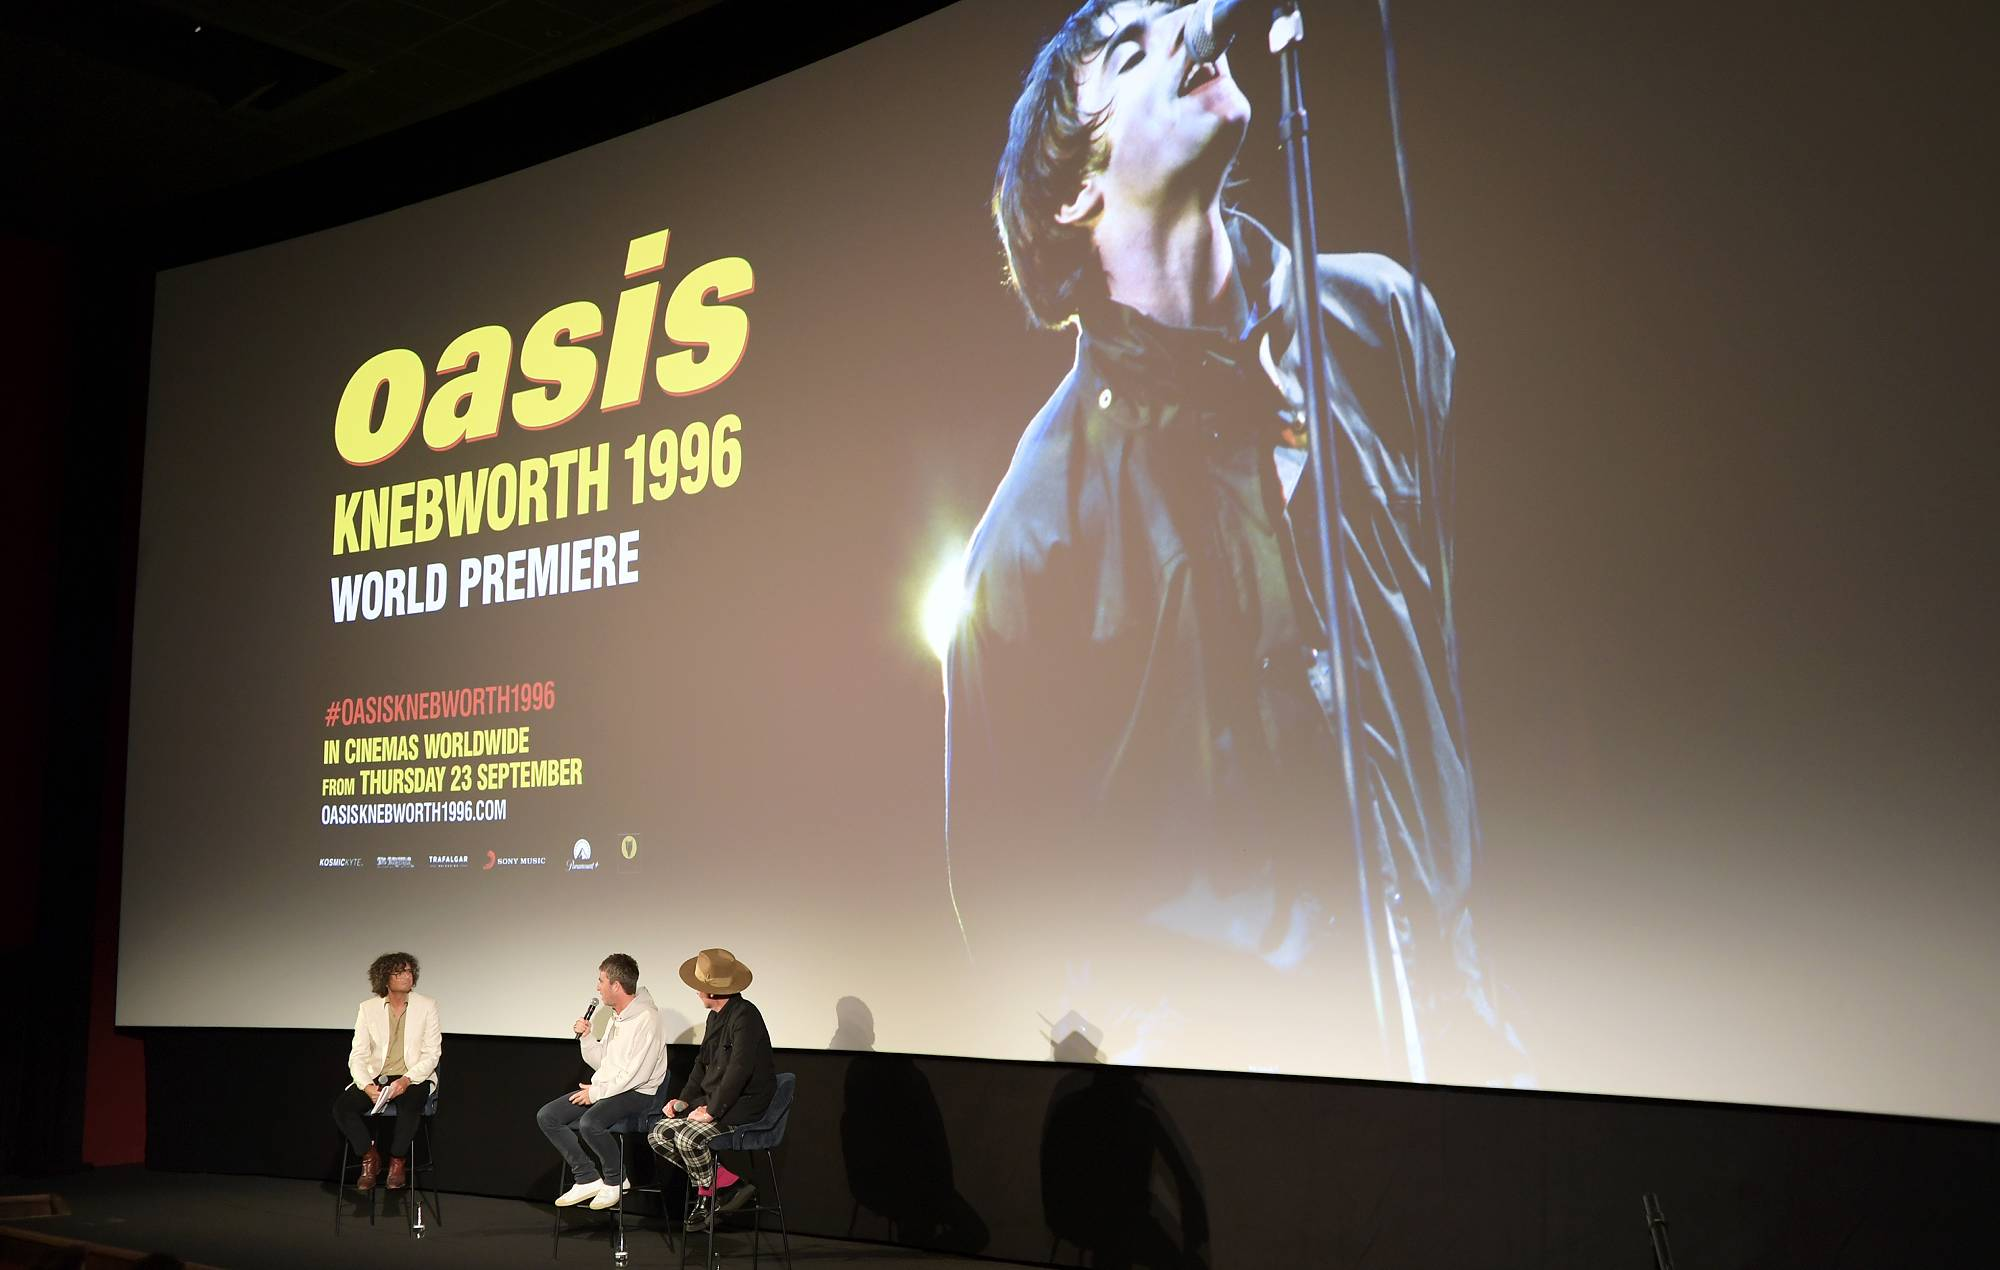 """Moderator Will Hodgkinson, Noel Gallagher and Director Jake Scott attend the World Premiere of """"Oasis Knebworth 1996"""" at the Picturehouse Central on September 16, 2021 in London, England. (Photo by David M. Benett/Dave Benett/Getty Images for Trafalgar Releasing)"""